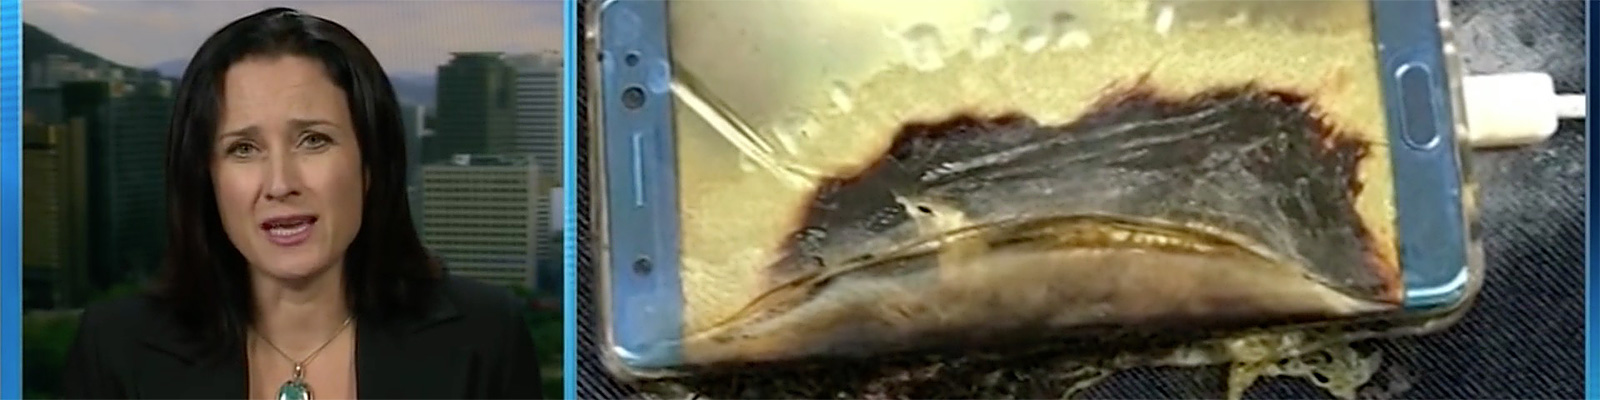 Samsung issues safety recall for Galaxy Note 7(CNN)